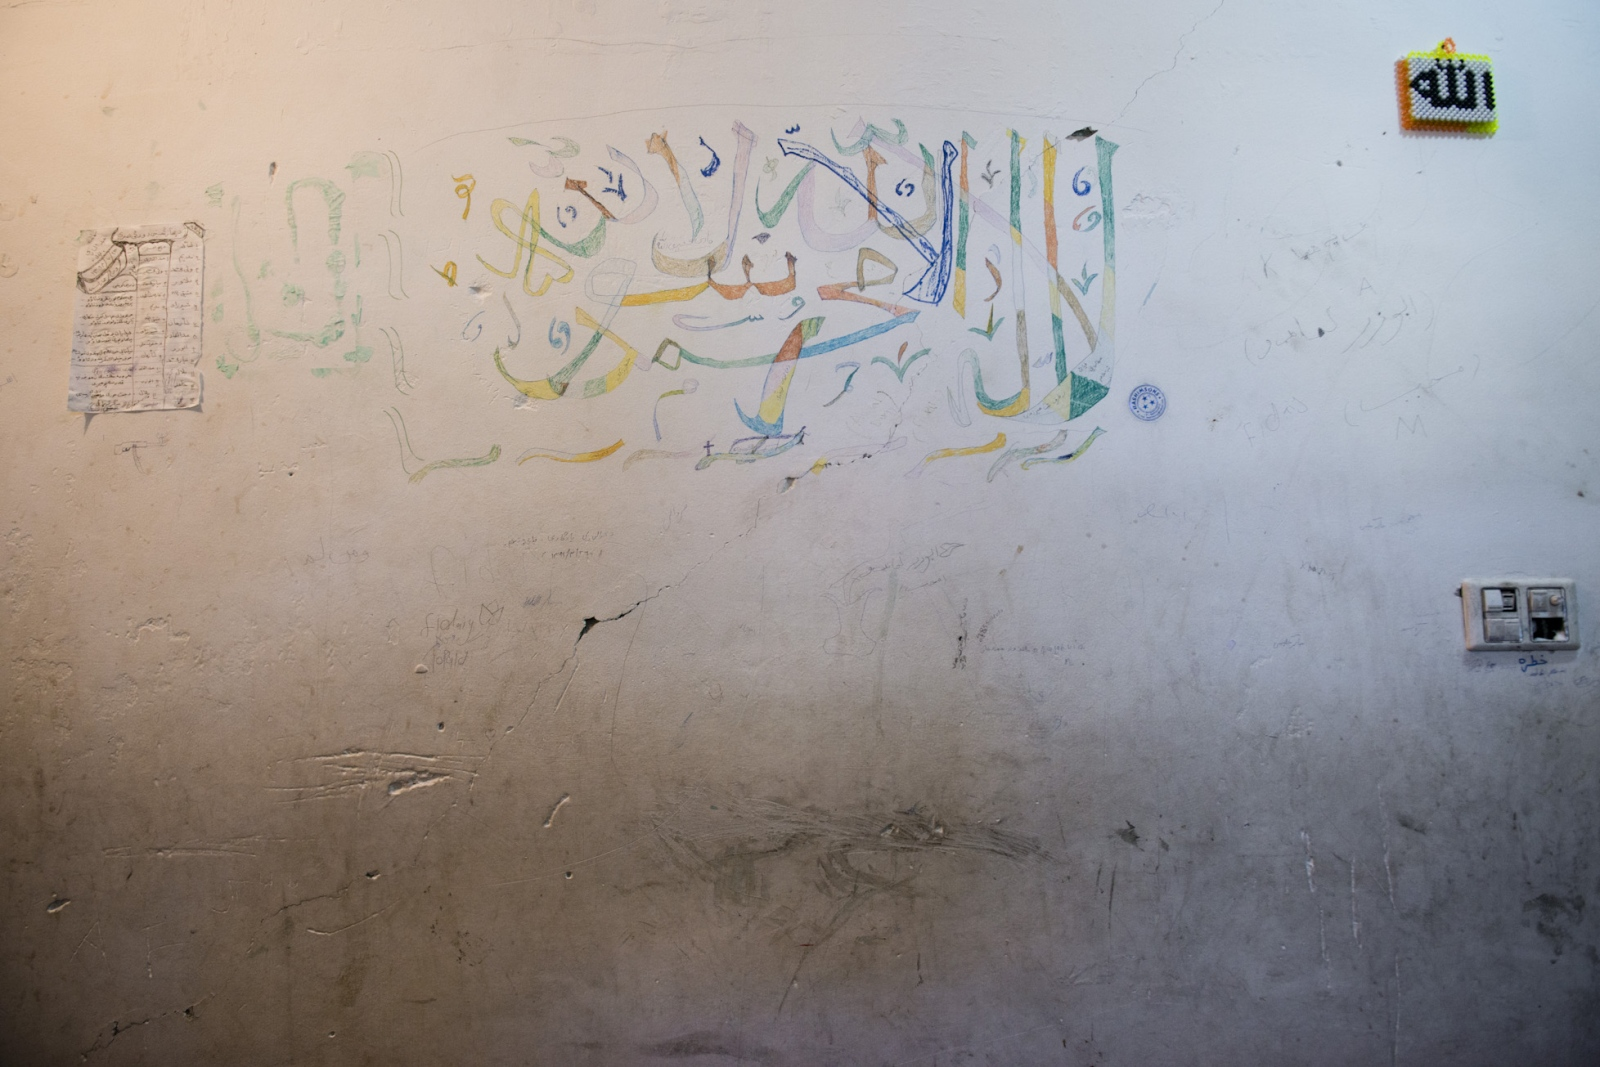 NANGARHAR, AFGHANISTAN | 2015-12-02 | The writing on the wall of a call where to child political prisoner, meaning that they were recruited by Taliban, inside Jalal Abad juvenile rehabilitation centre.